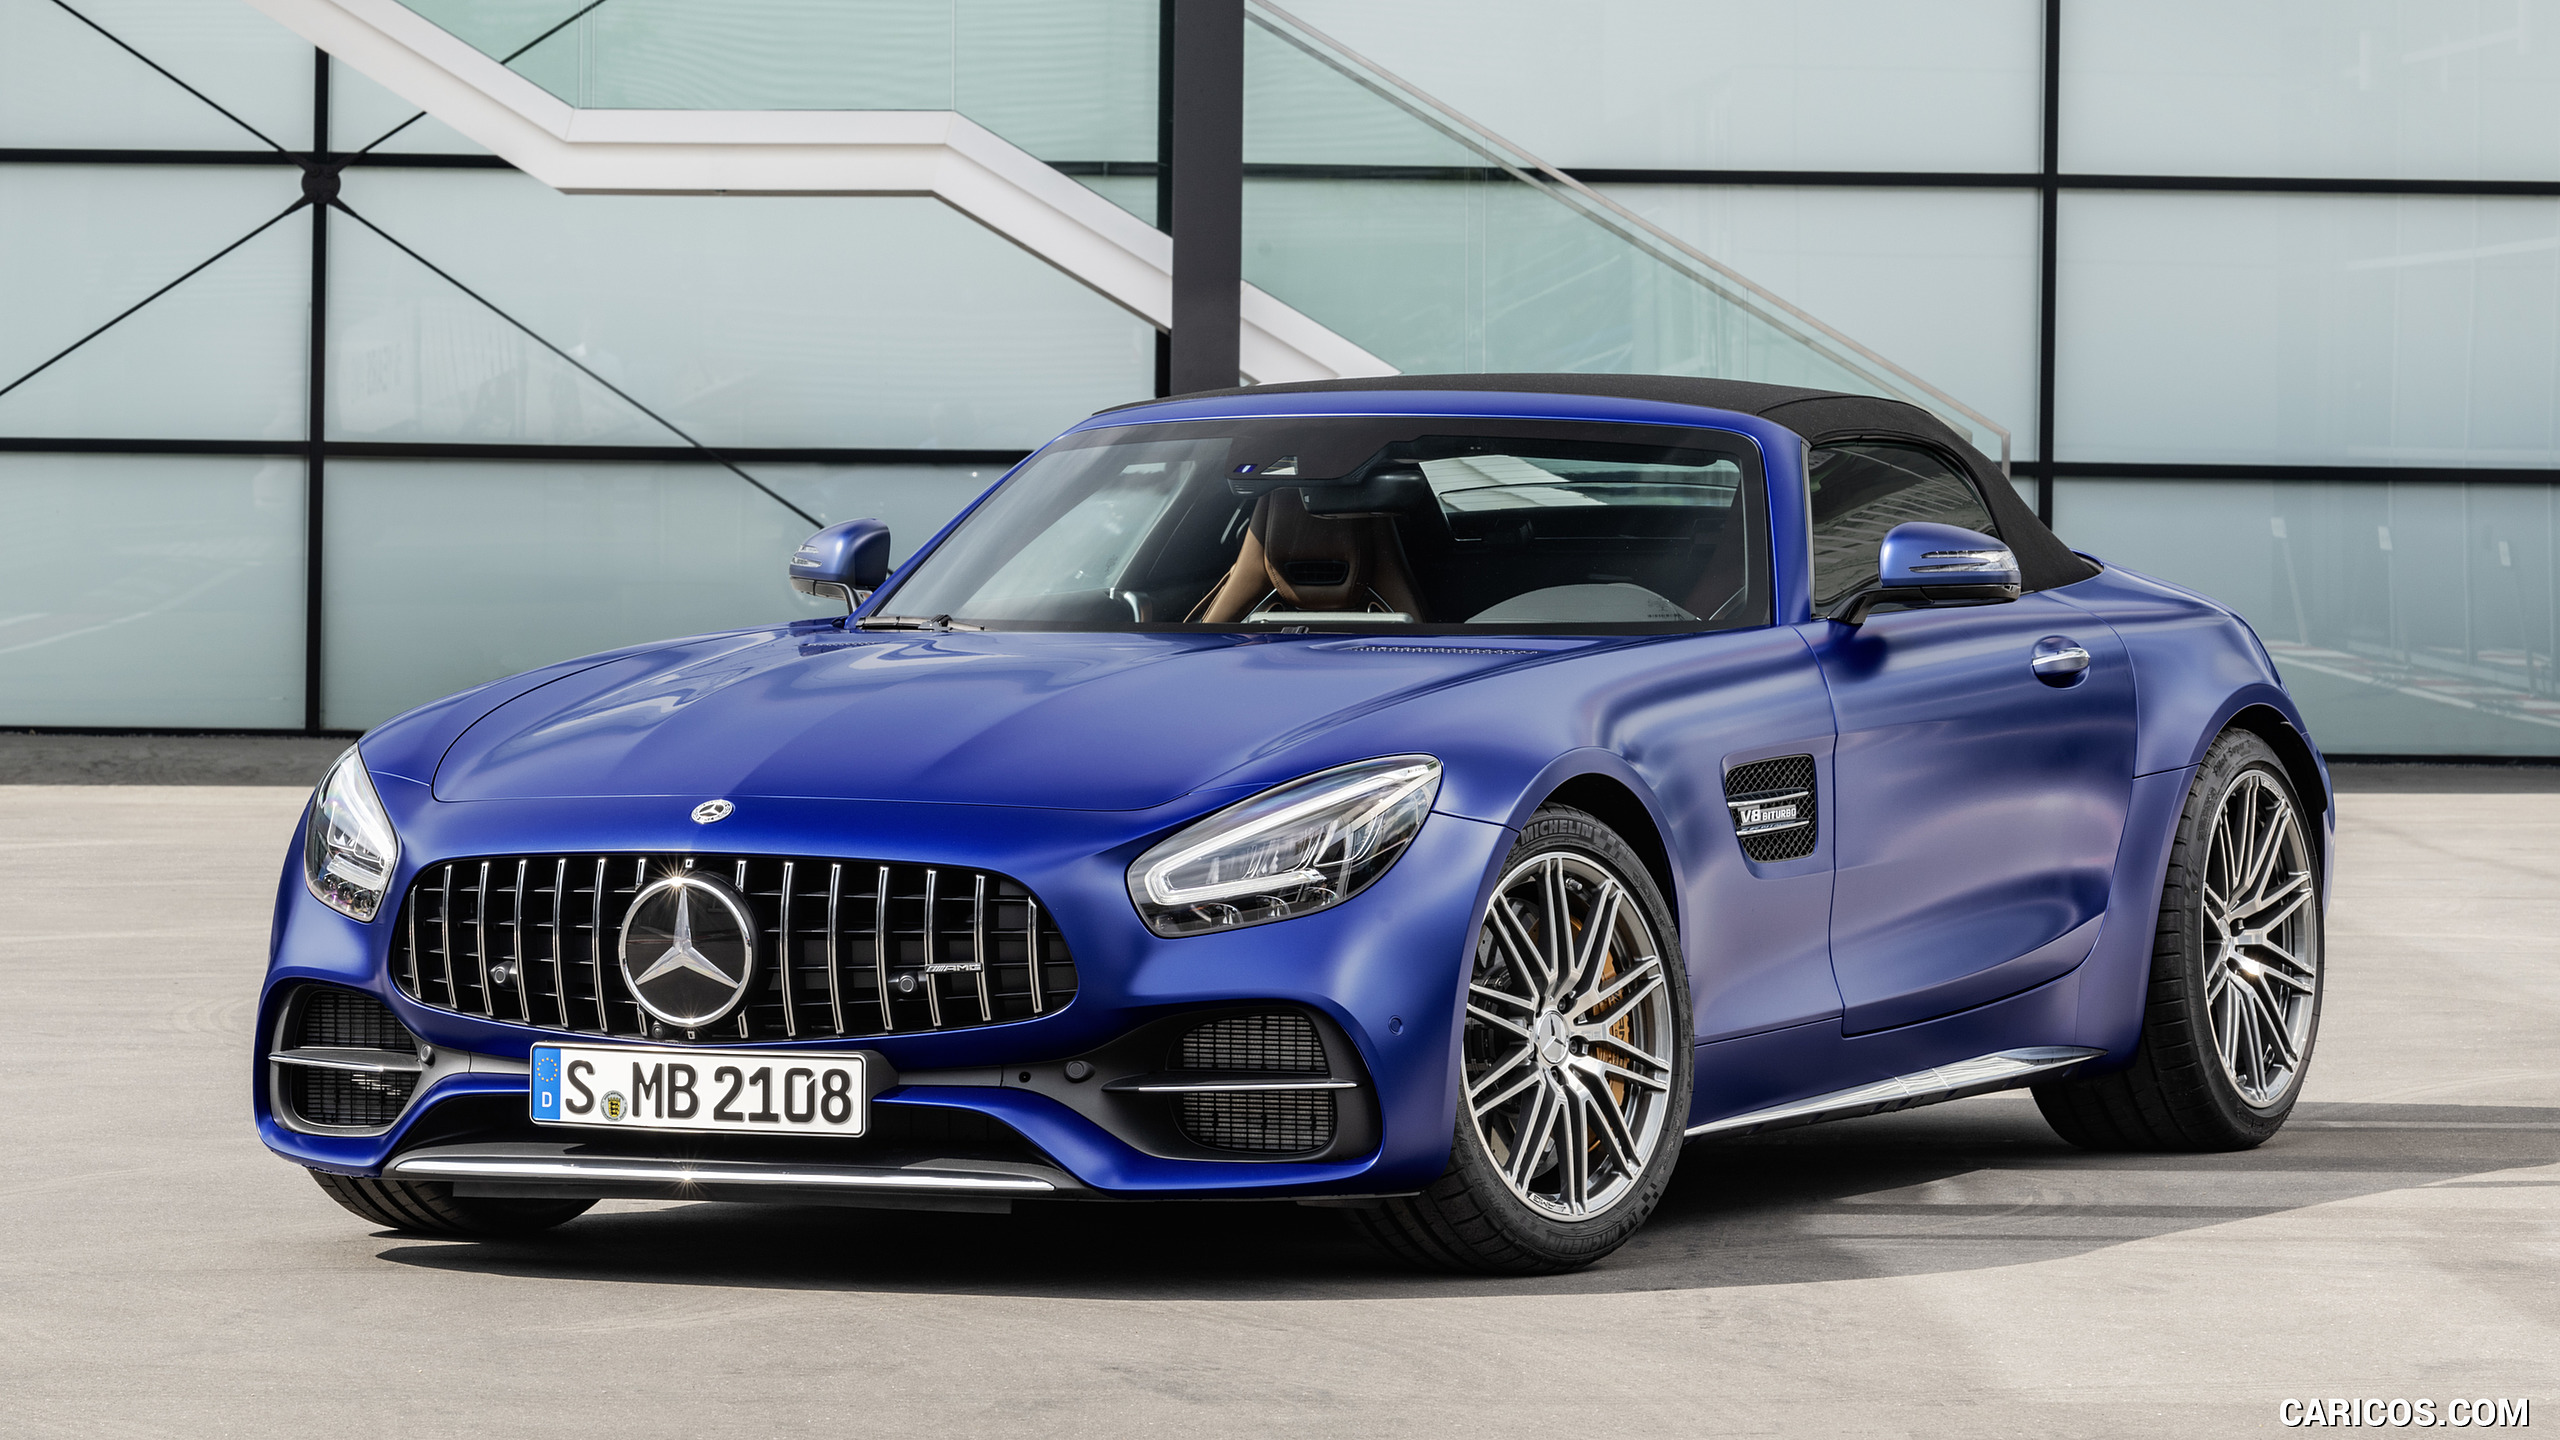 49 The Best 2020 Mercedes AMG GT New Model and Performance